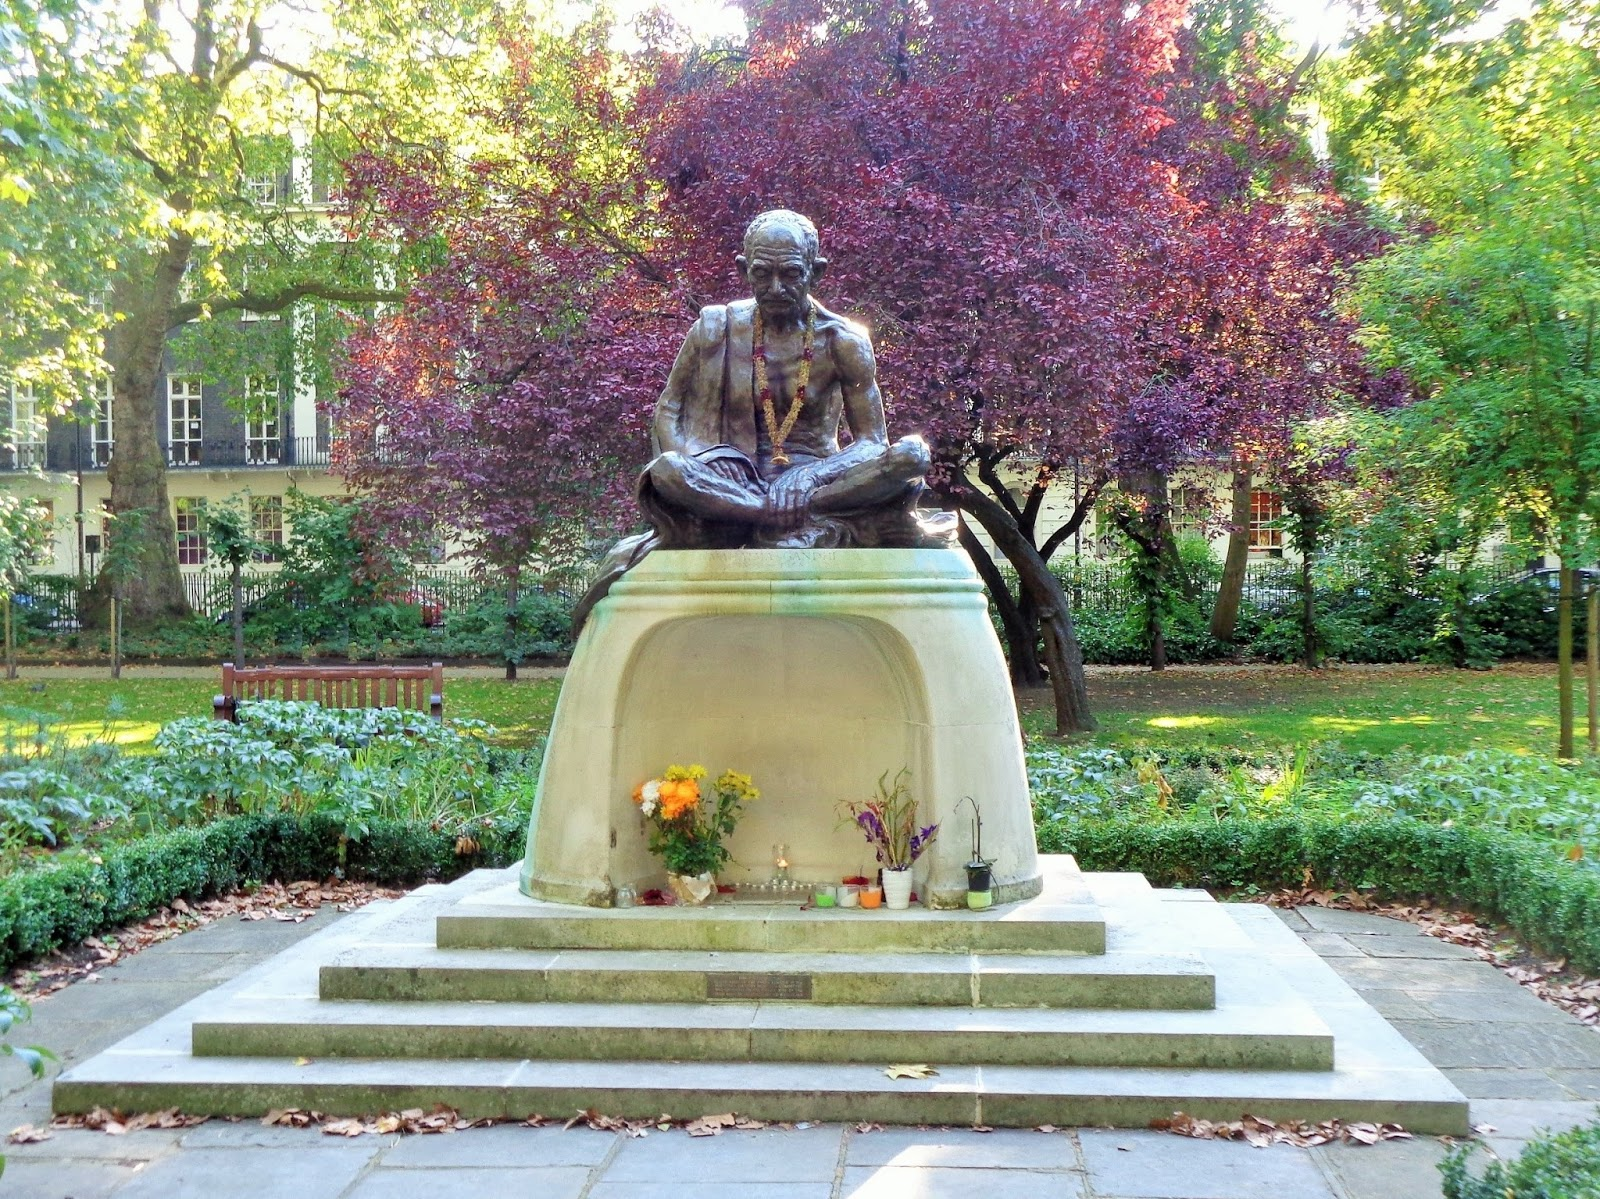 The Mahatma Gandhi Memorial Unveiled By British PM Harold Wilson On 17th May 1968